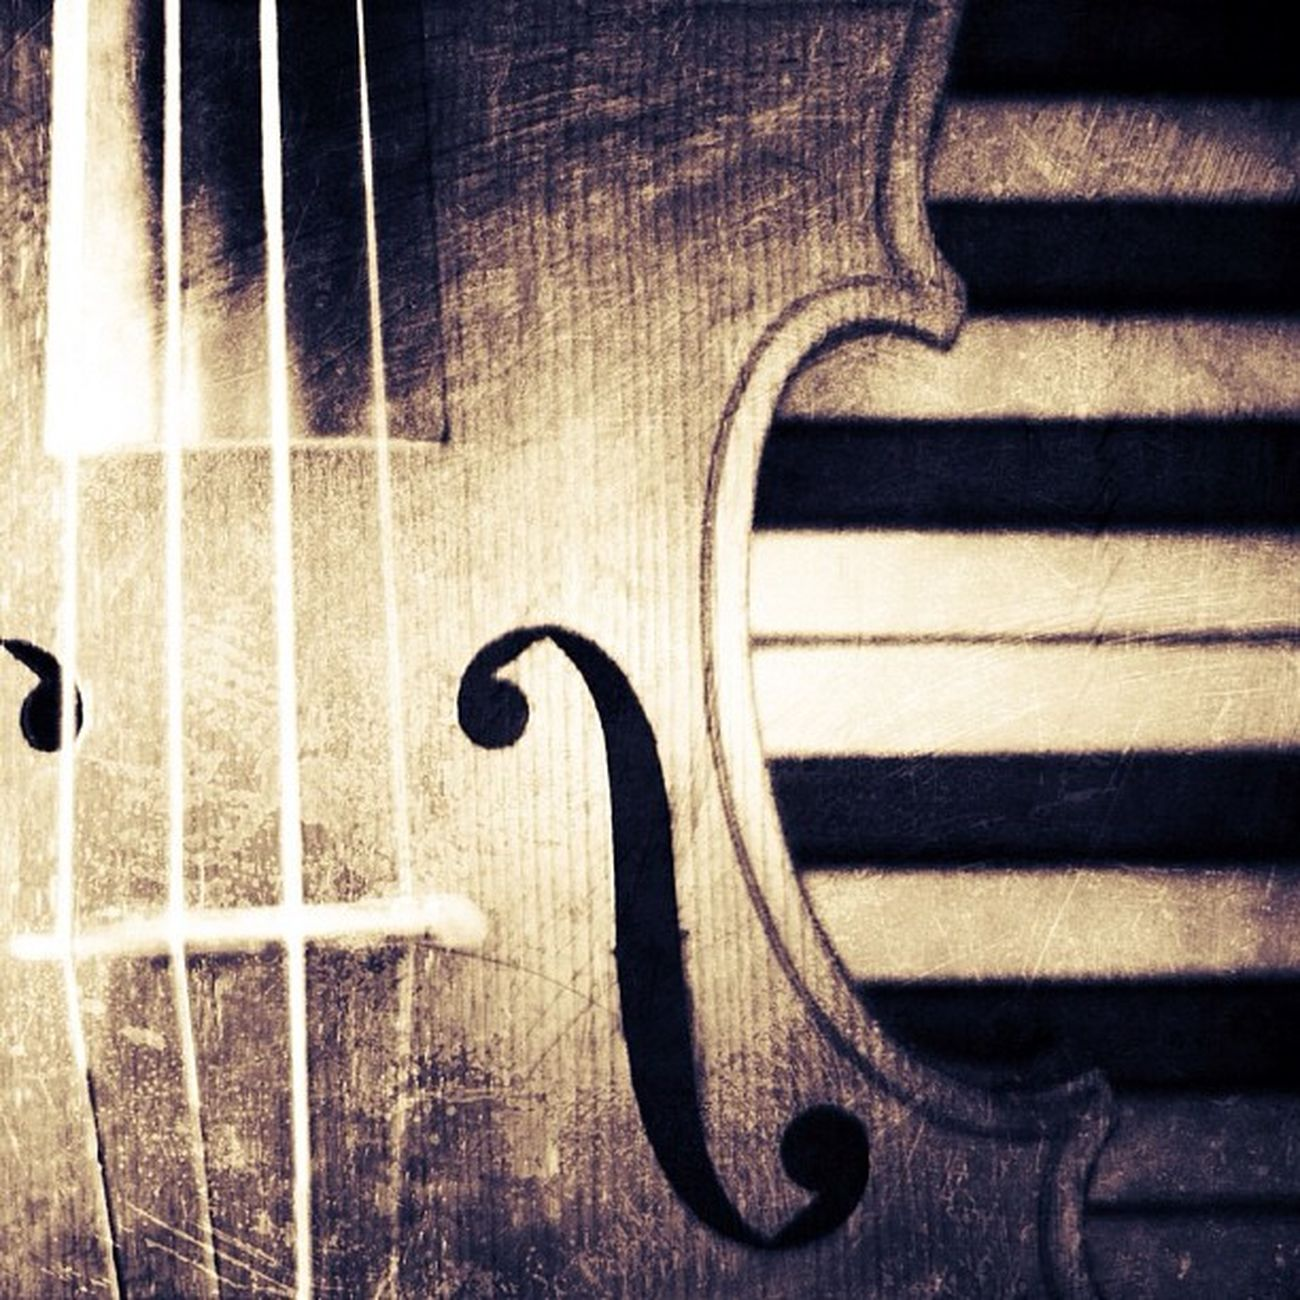 It's older than it looks. Really. #violin #music #piano #instruments Notes Instagramhub Keys Jj_forum Piano The_guild Nostalgia Primeshots Instruments Ilovemusic Violin Photosfans Photooftheday Gmy Musica Igmusic GCS Instamillion Strings Jj_forum_0362 Igers Jj_forum_0410 IGDaily Jj  Instagood Igscout Music Instaaaaah